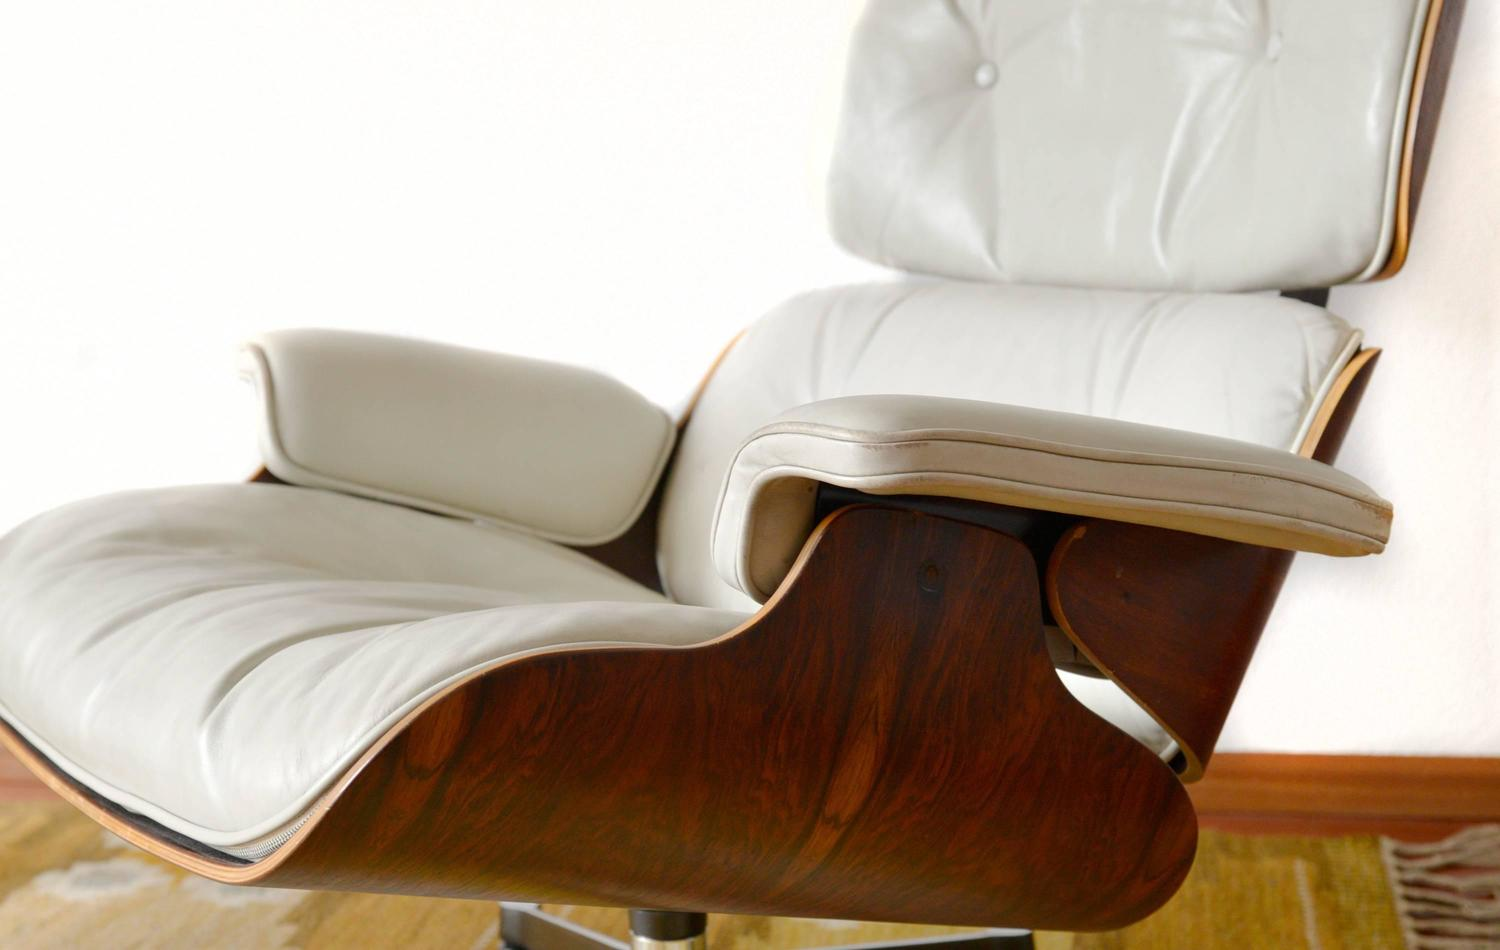 White Leather Lounge Chair Charles Eames For Sale at 1stdibs